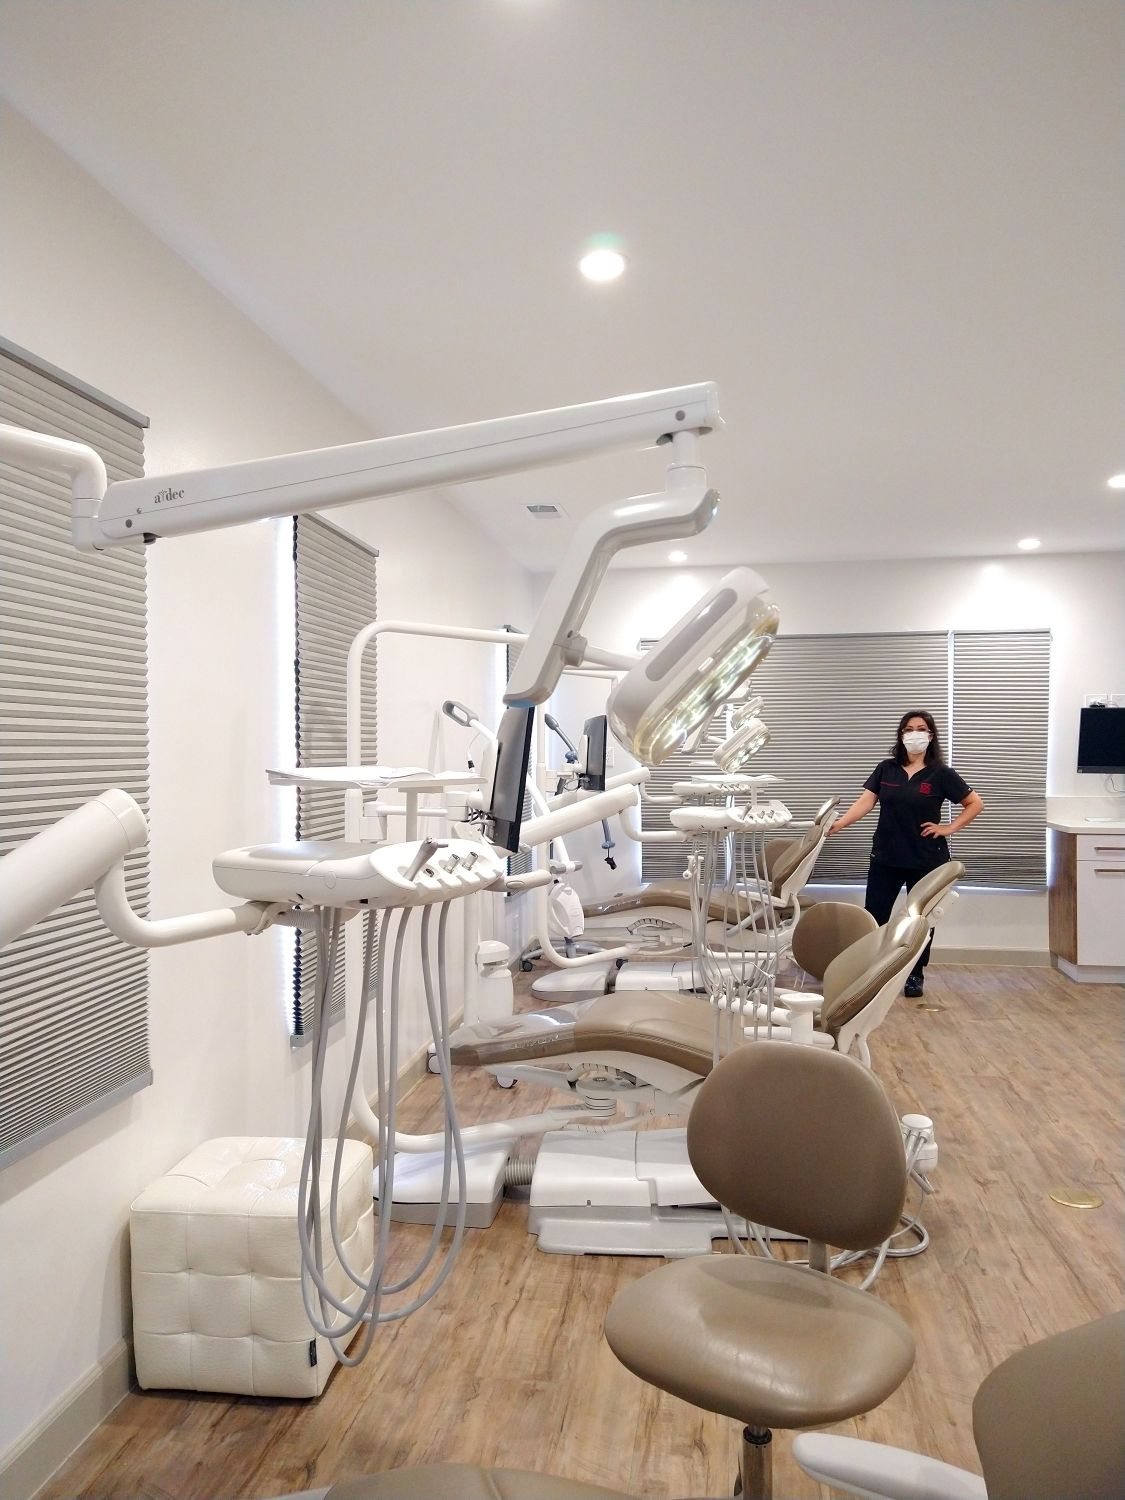 Pacific Dental Care Office Tour 2